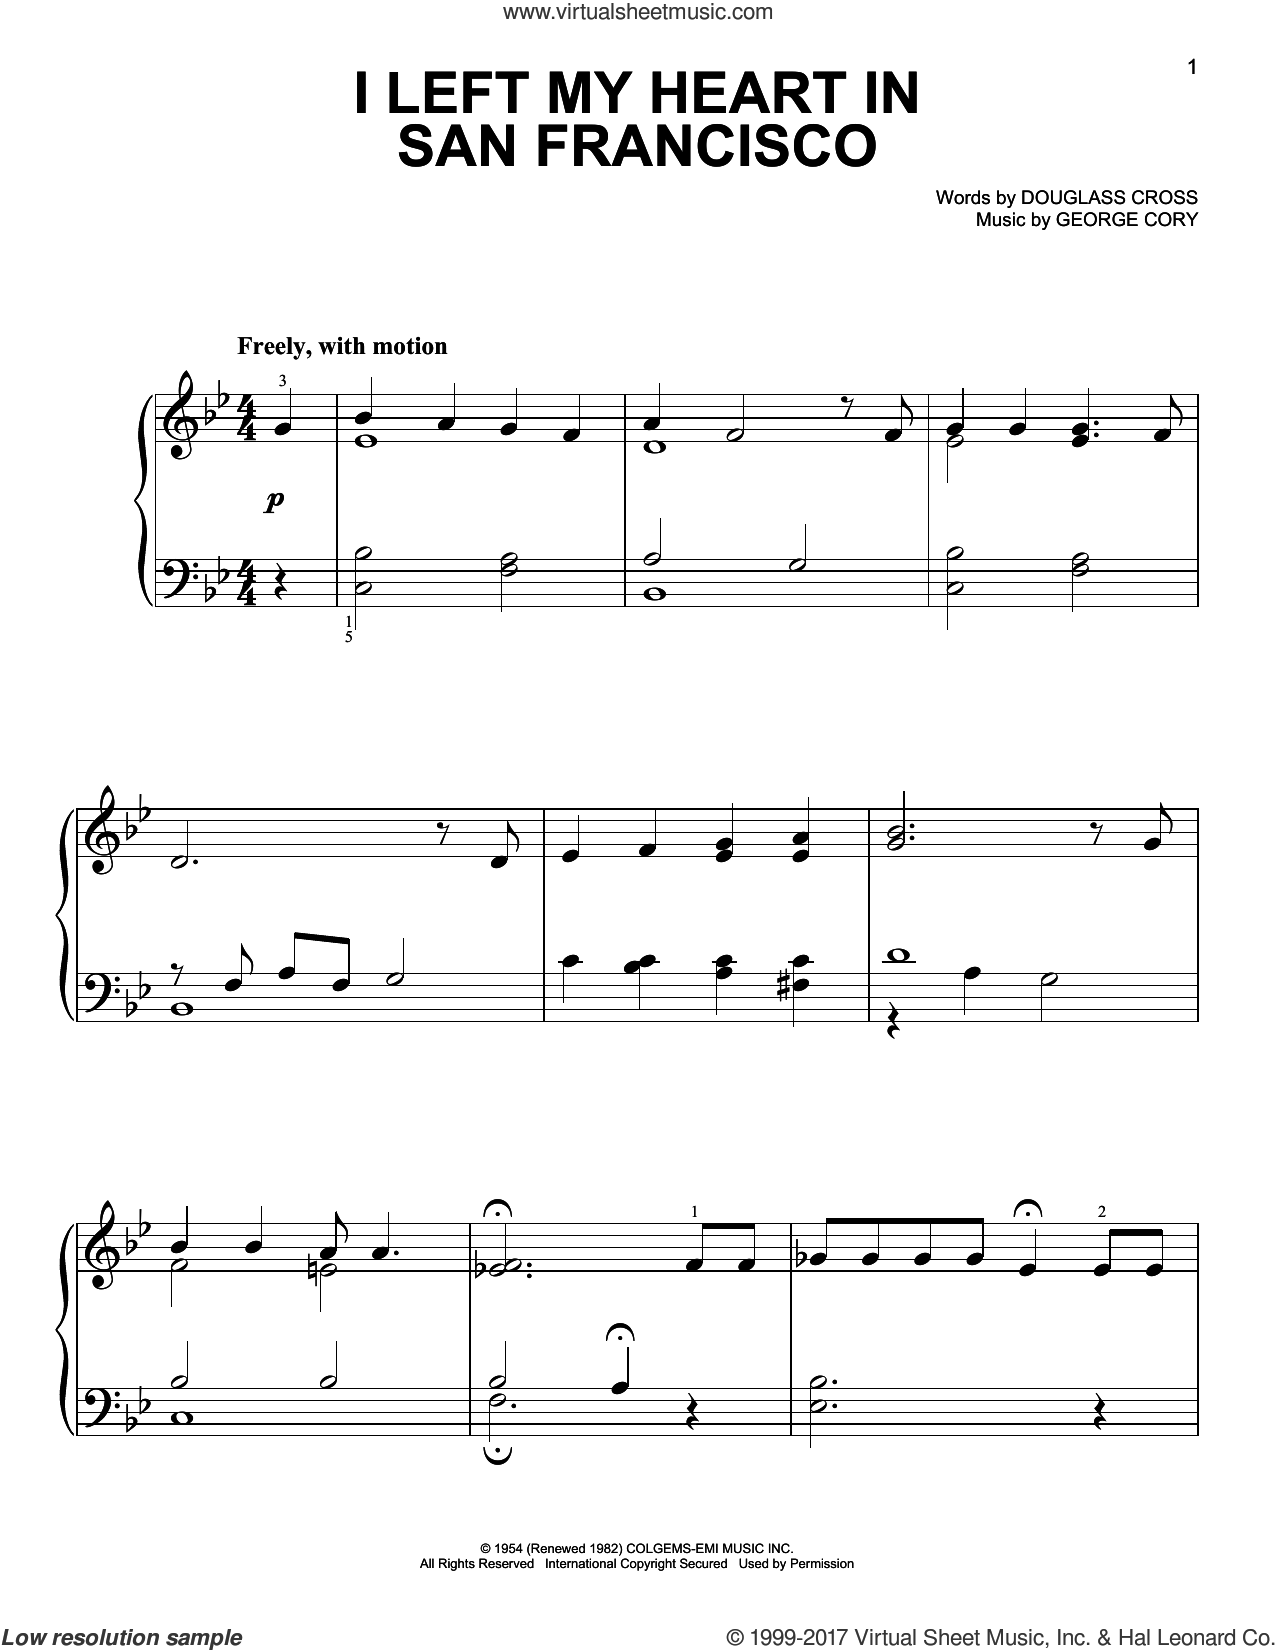 I Left My Heart In San Francisco sheet music for piano solo by George Cory, Tony Bennett and Douglass Cross, easy skill level